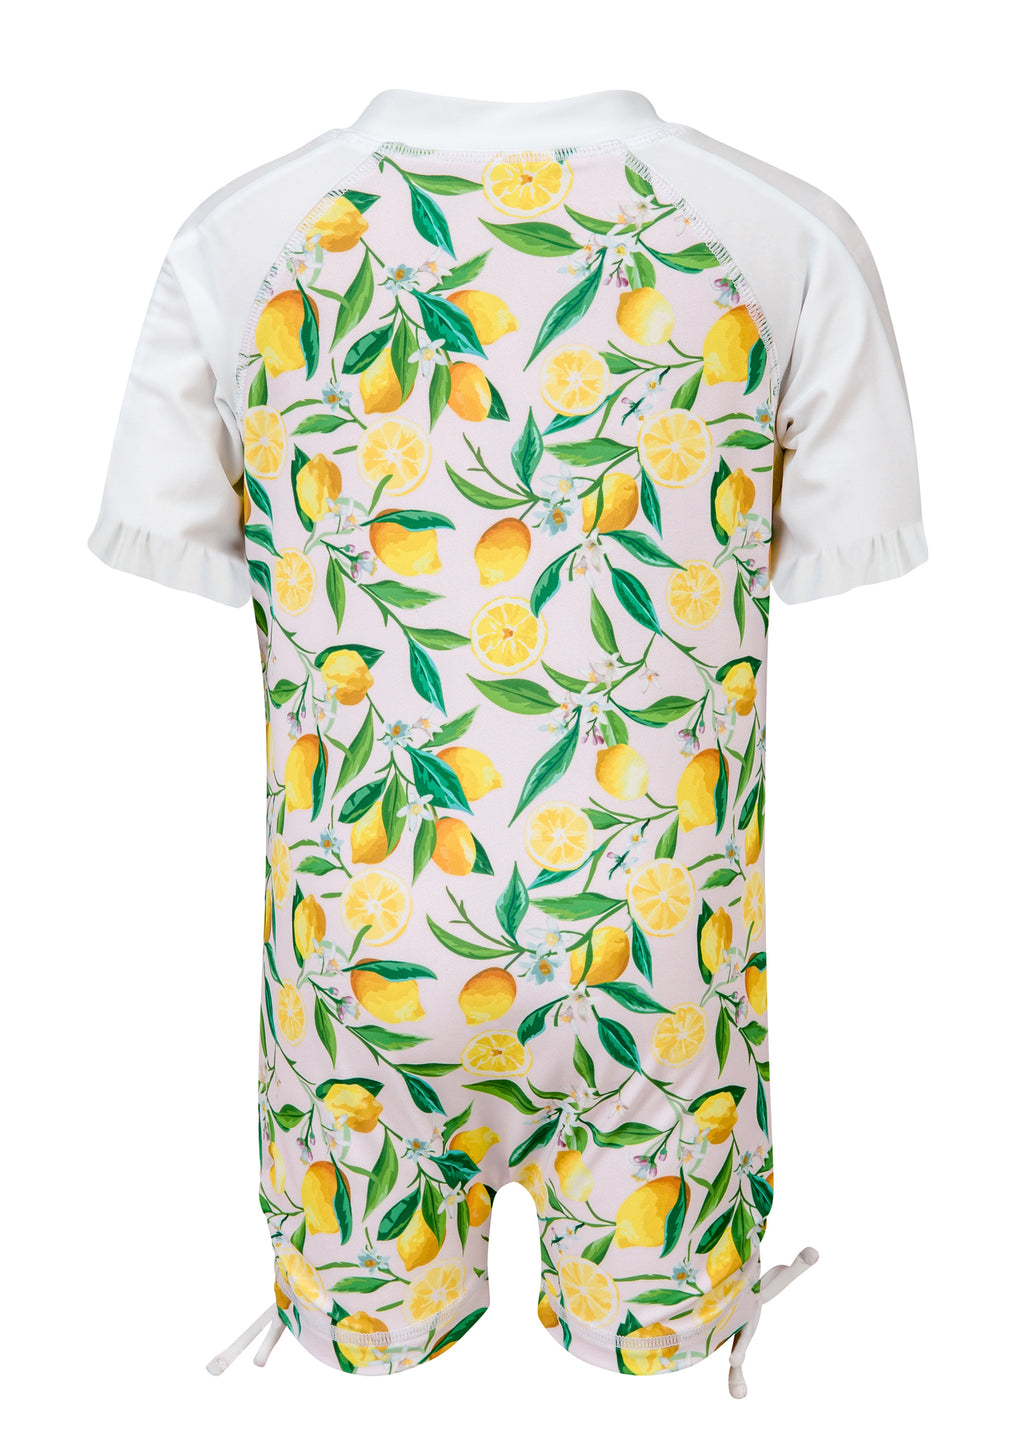 Lemon Short Sleeve Sunsuit